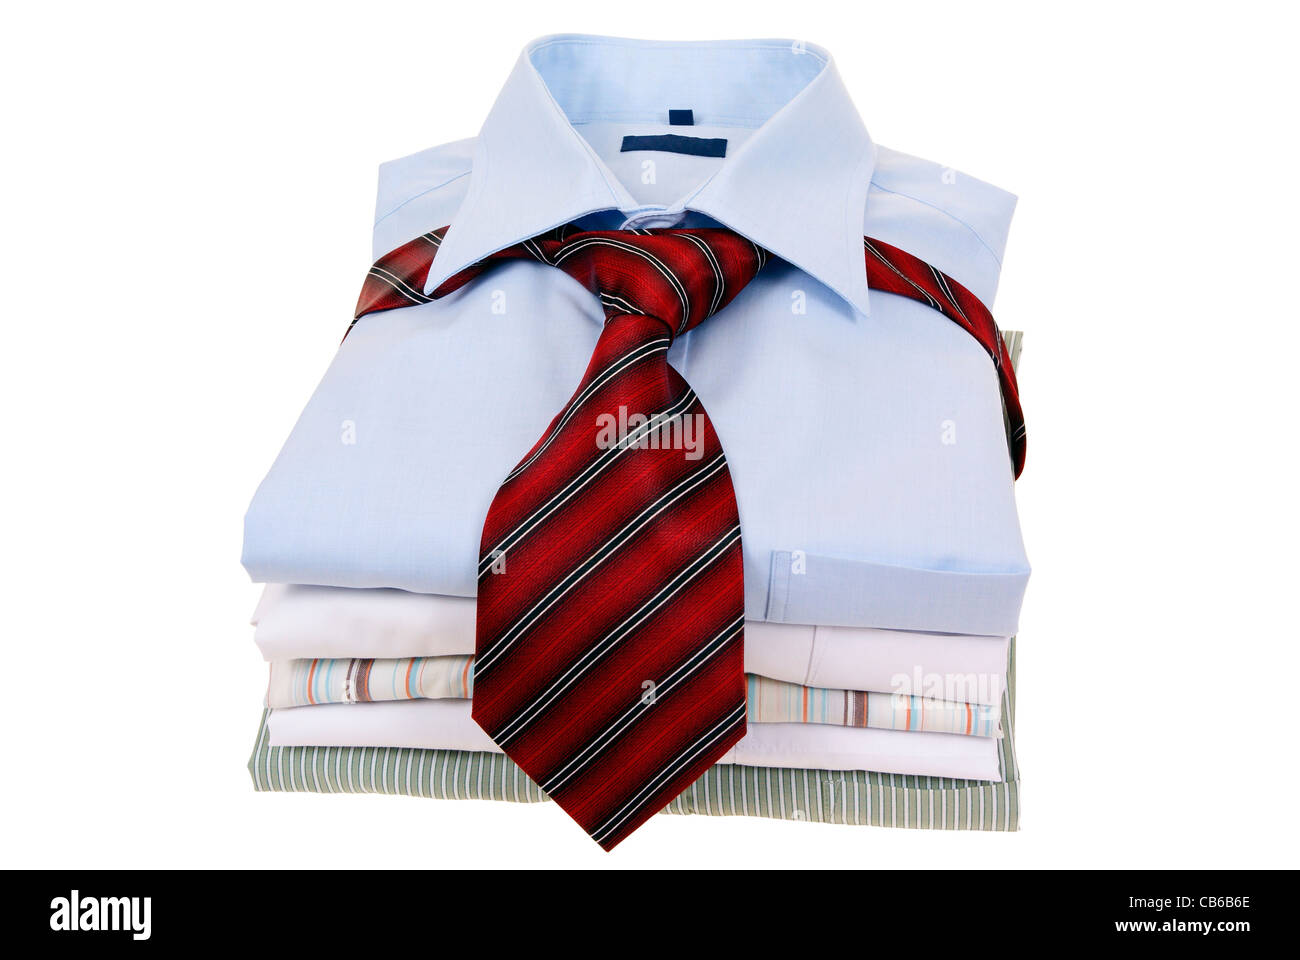 6a745785 men's shirts tied with tie isolated on white background - Stock Image